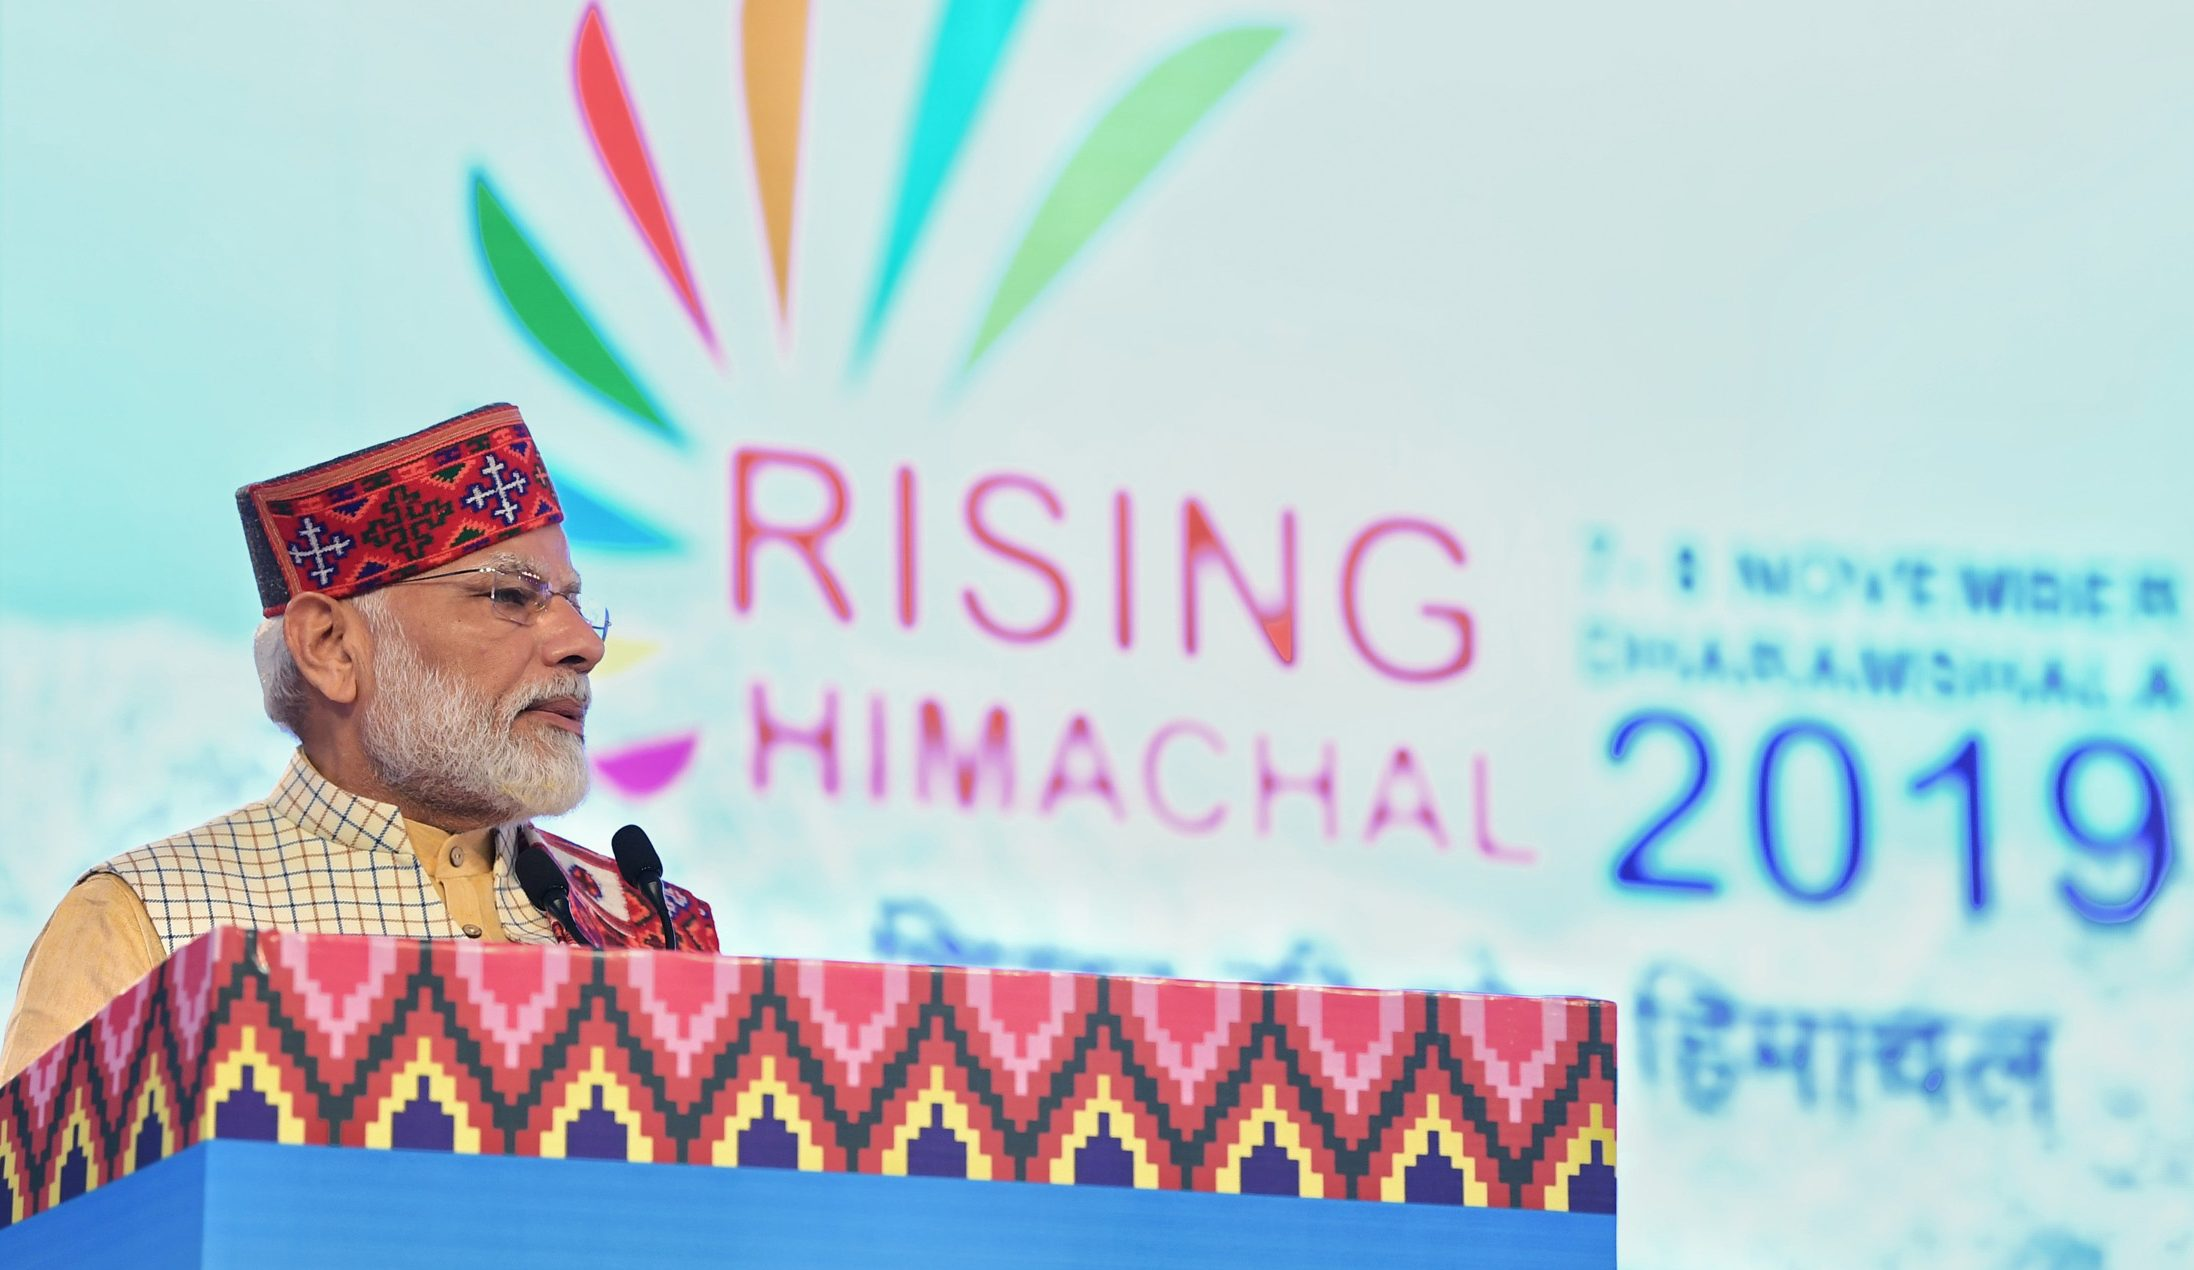 PM's address at the Global Investors' Meet 2019 in Dharamshala, Himachal Pradesh